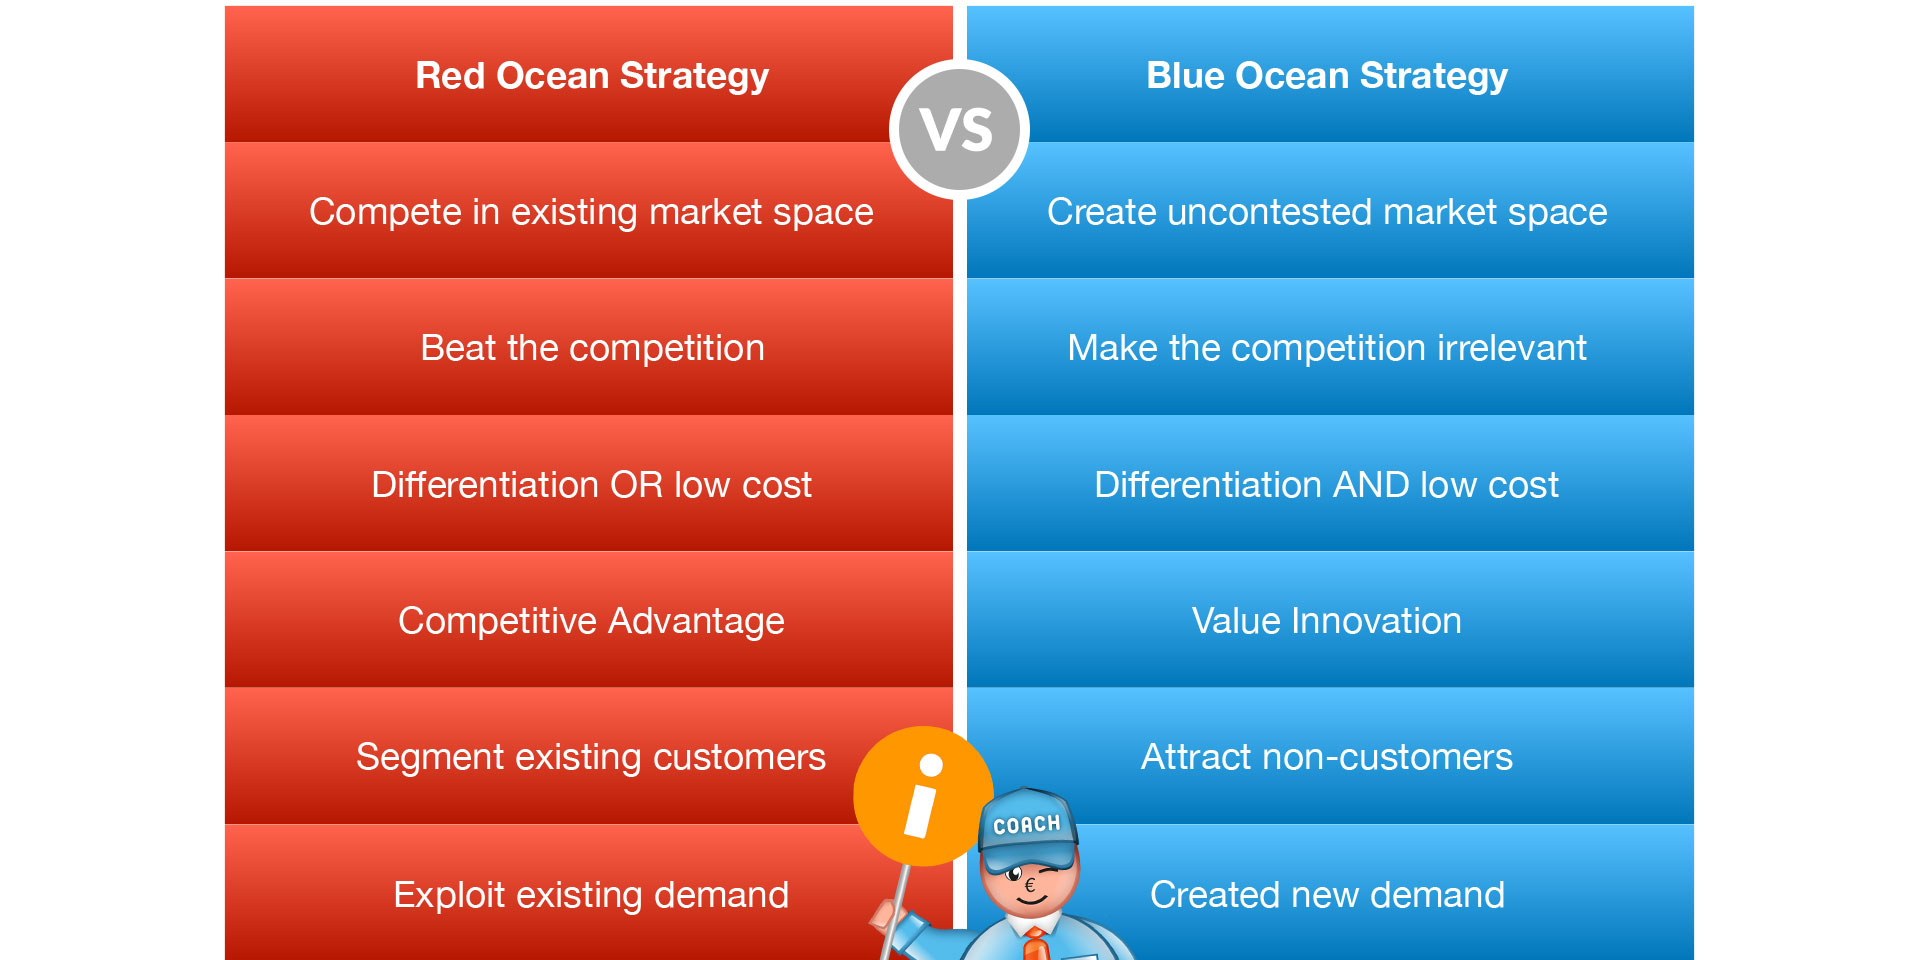 Red ocean vs blue ocean strategy